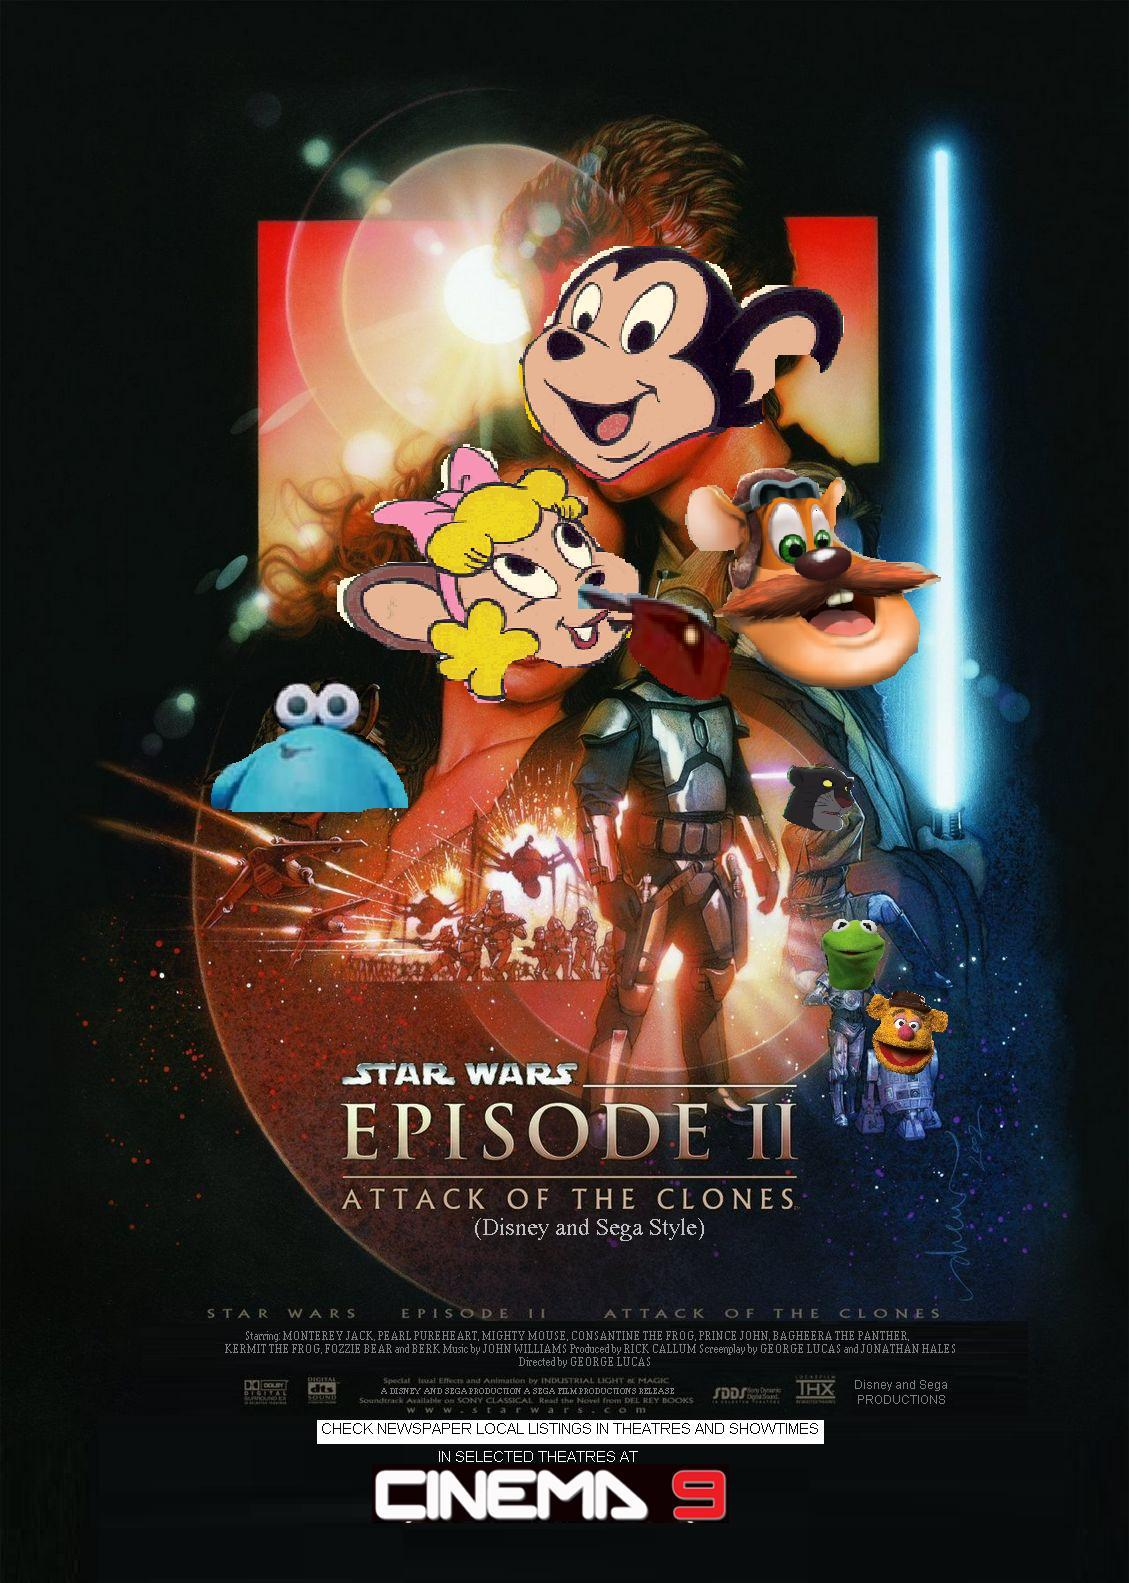 Star Wars Episode 2: Attack of the Clones (Disney and Sega Style)